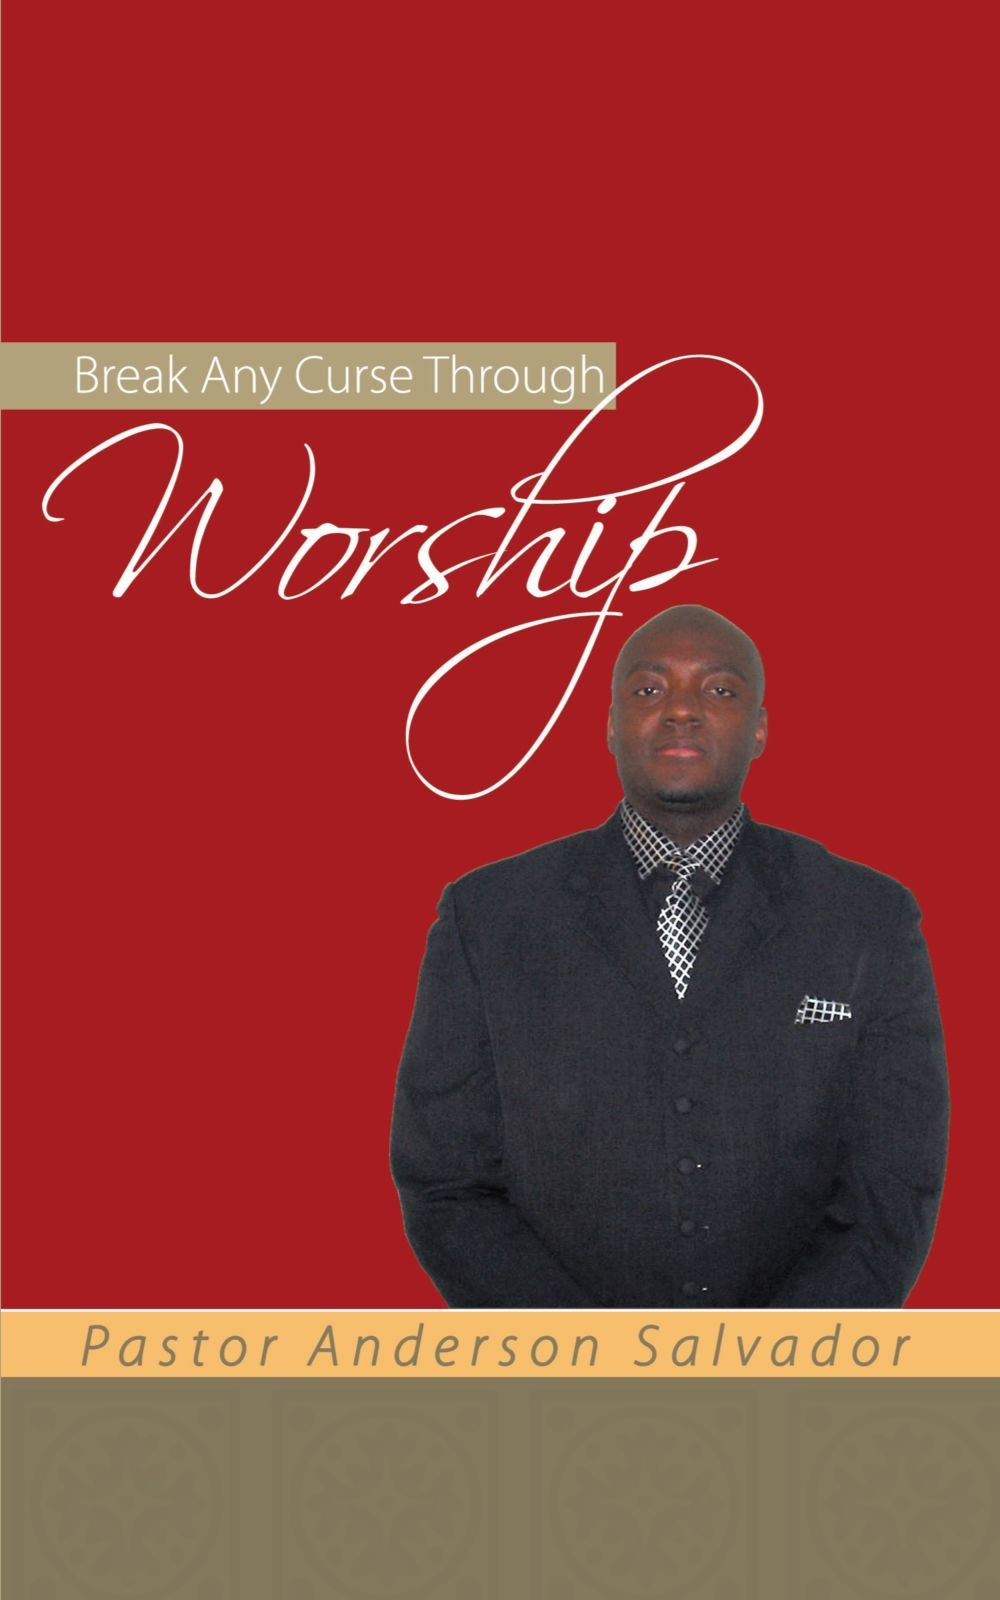 Break Any Curse Through Worship PDF